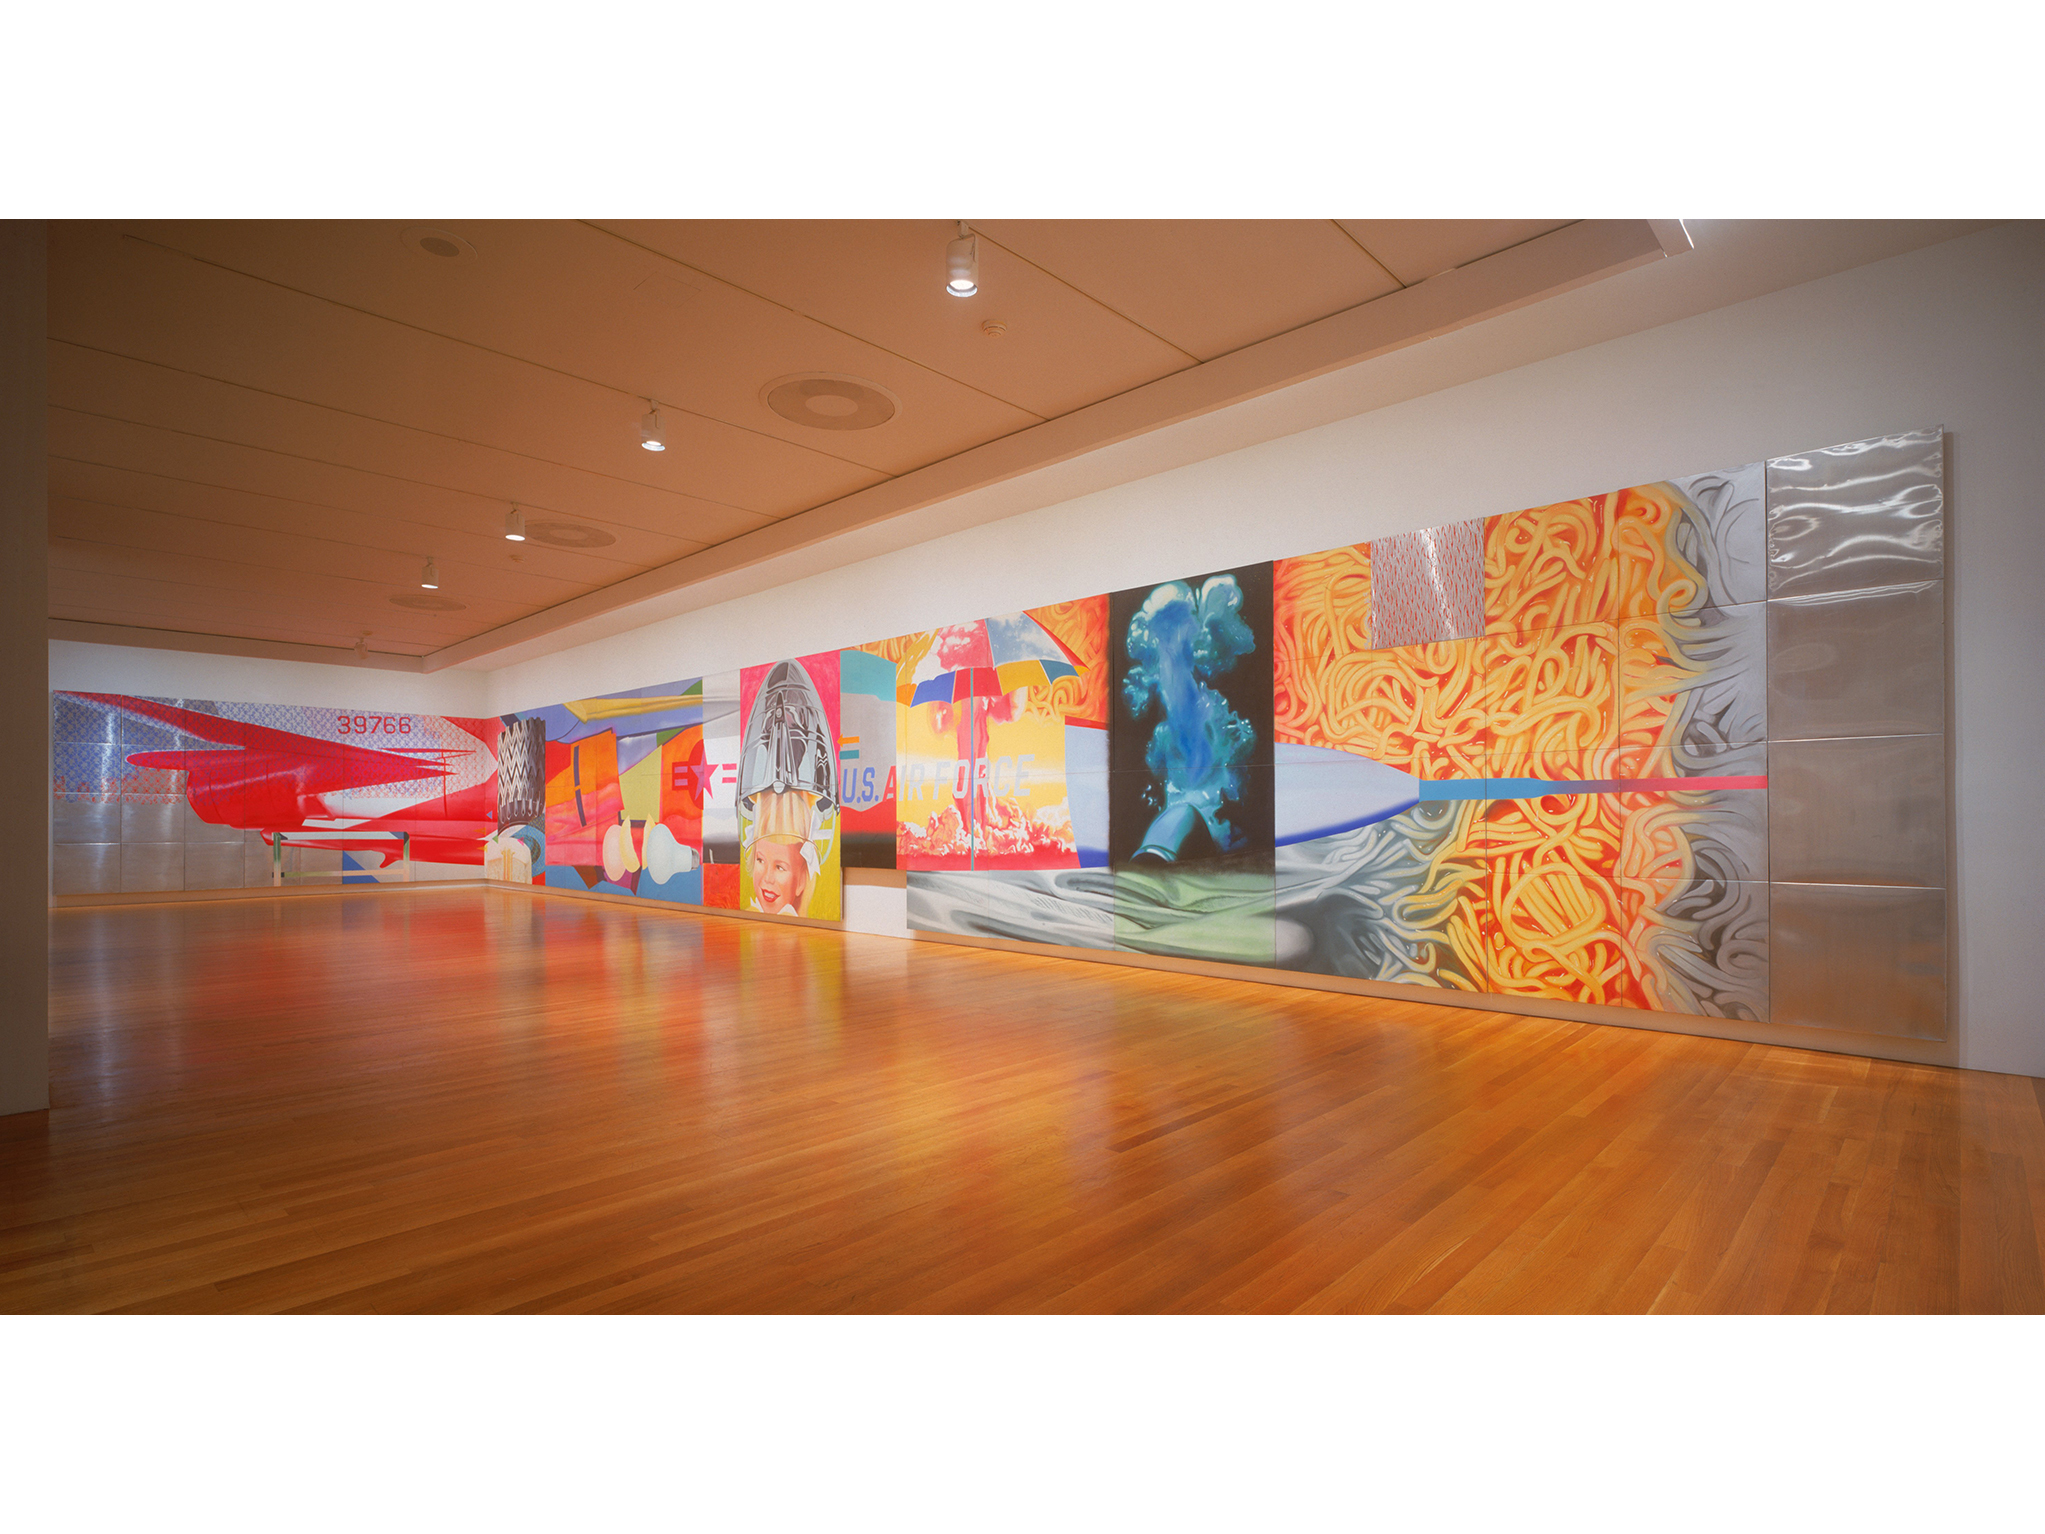 F-111 (1964–65), James Rosenquist